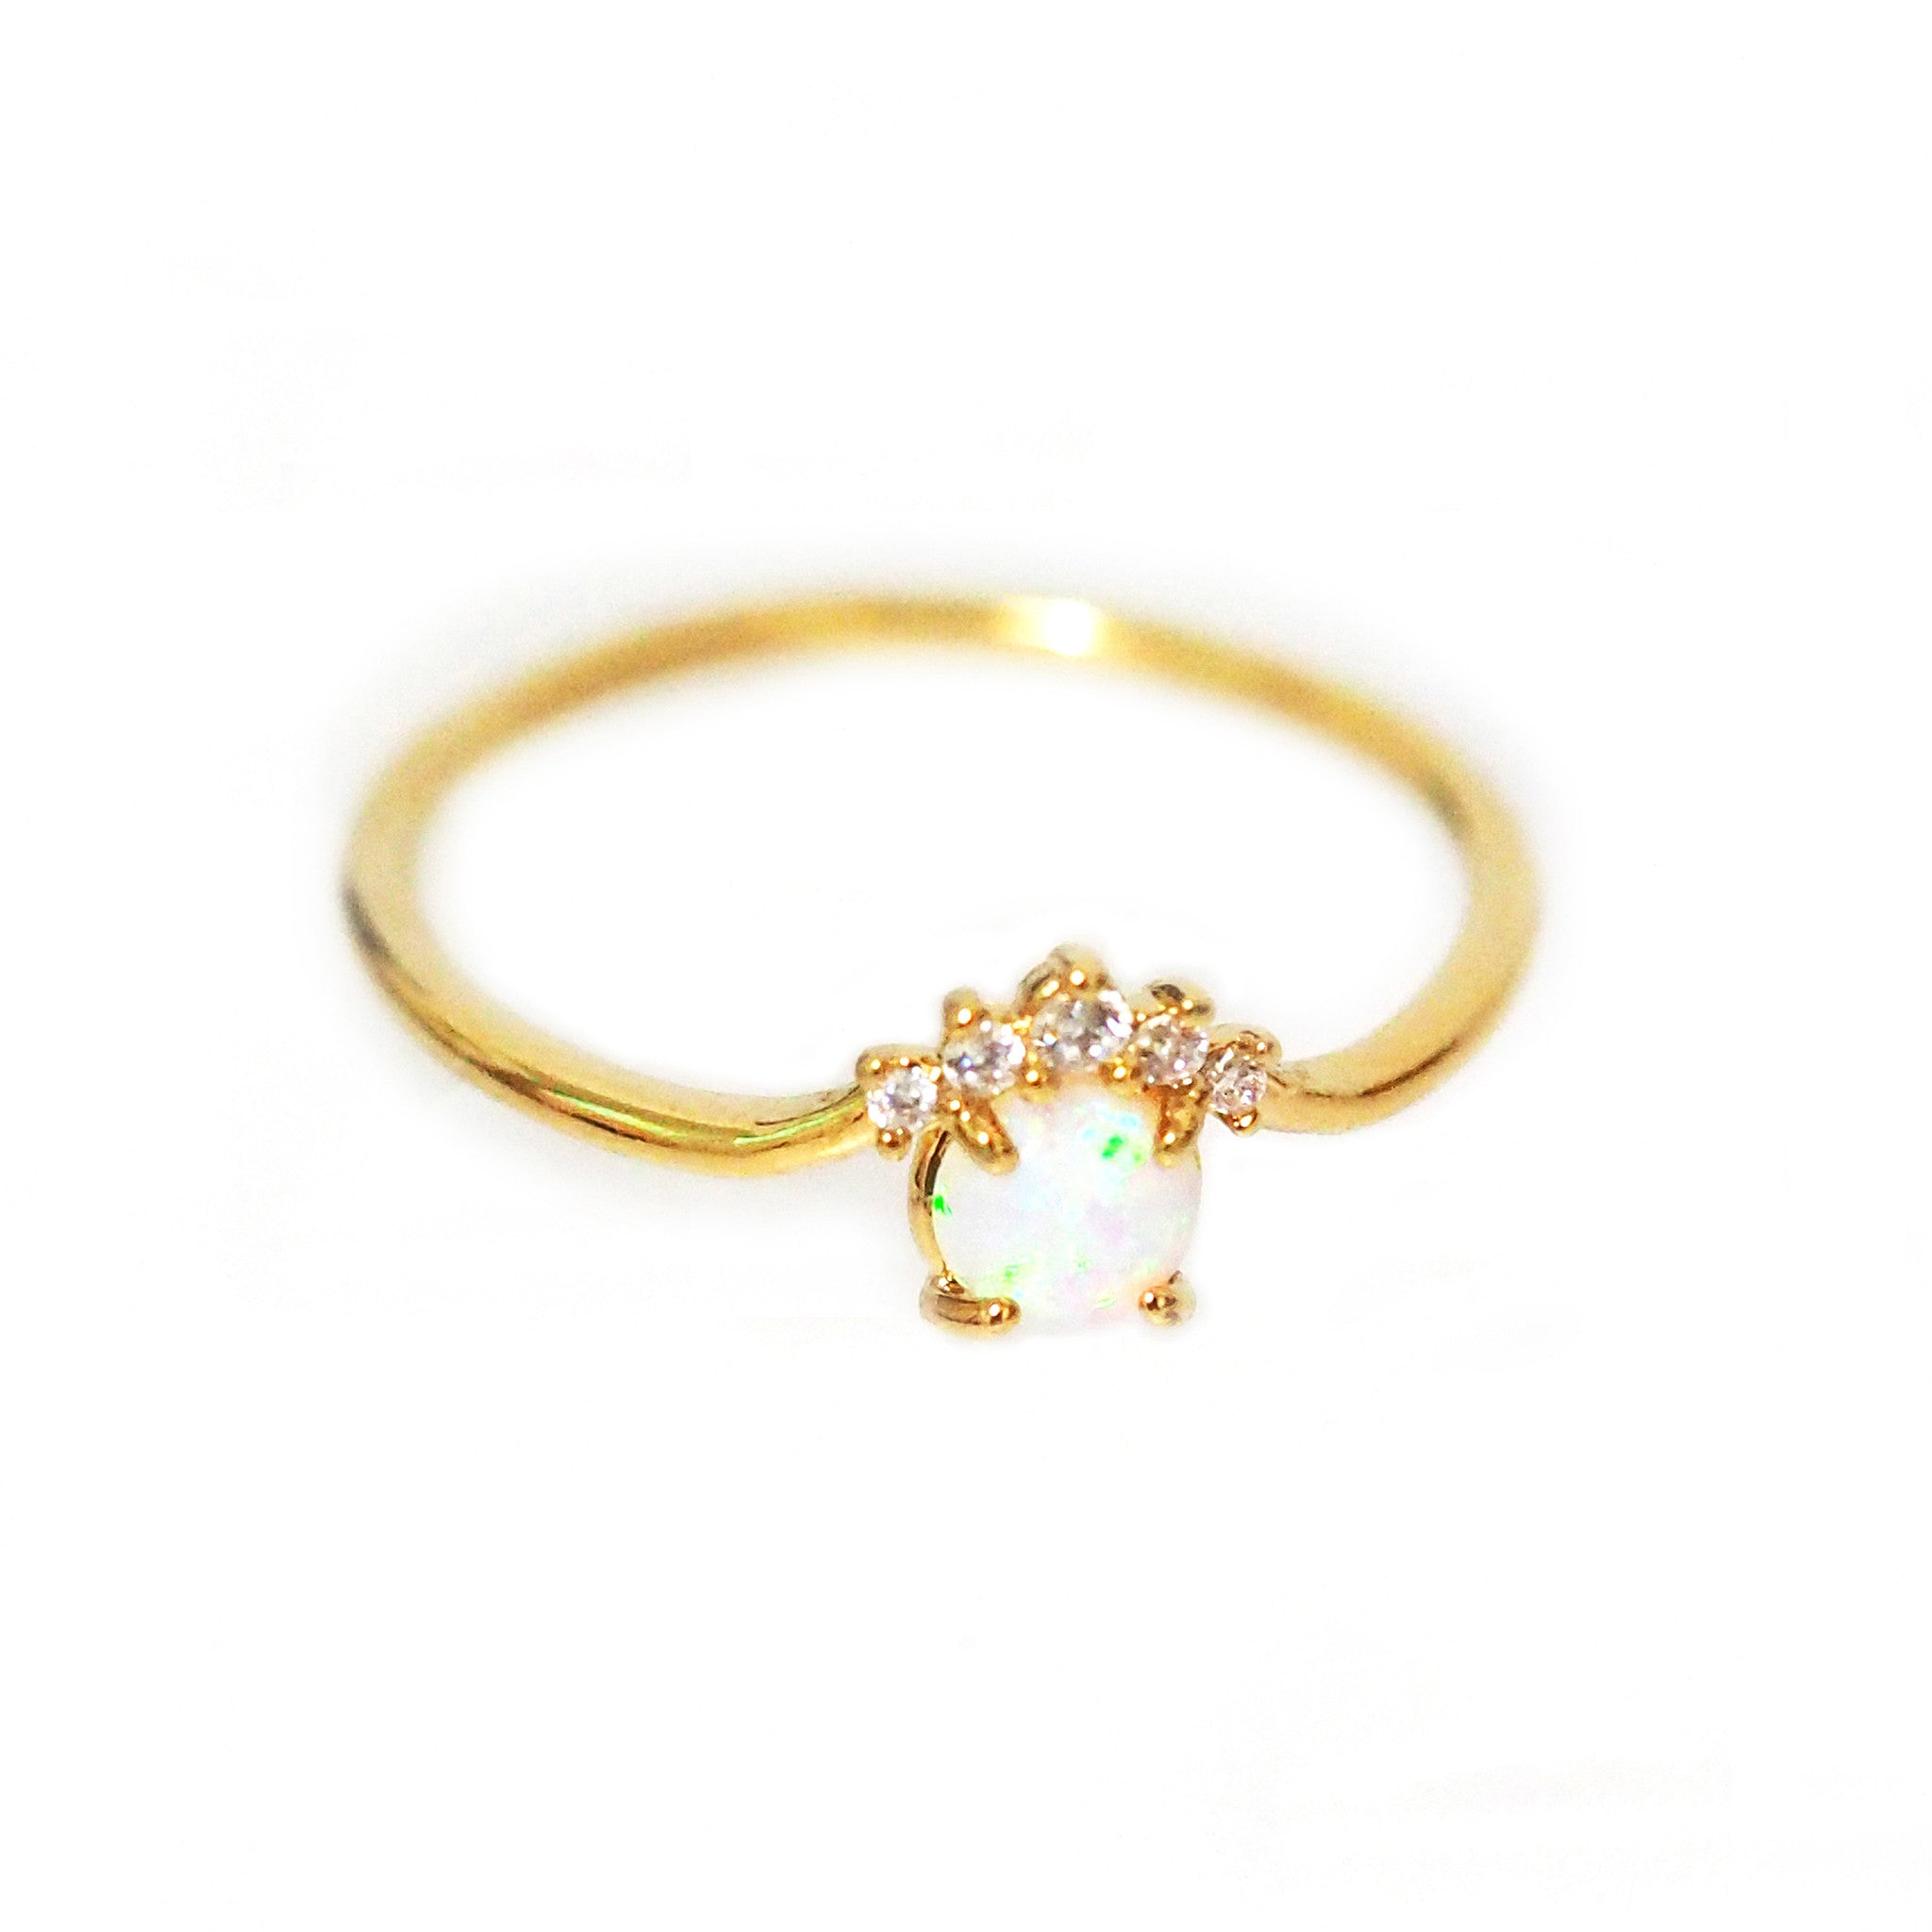 diamond ring rings small rebecca yellow jewellery black the peacock gold garnered product shop